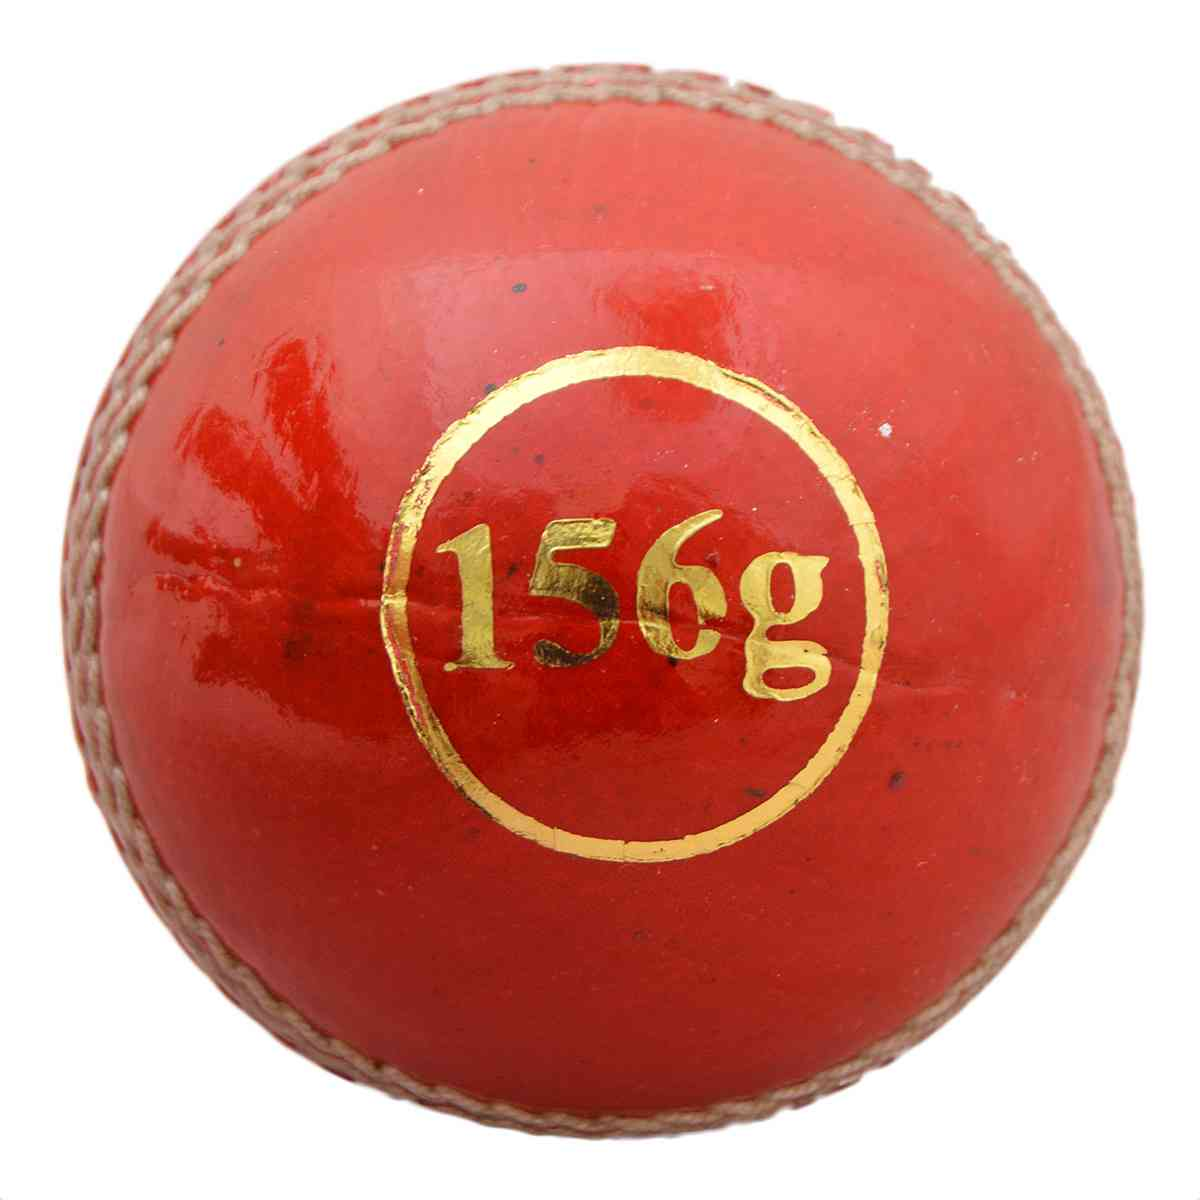 Duke High Quality Hard Ball (156g Corkball) - Red